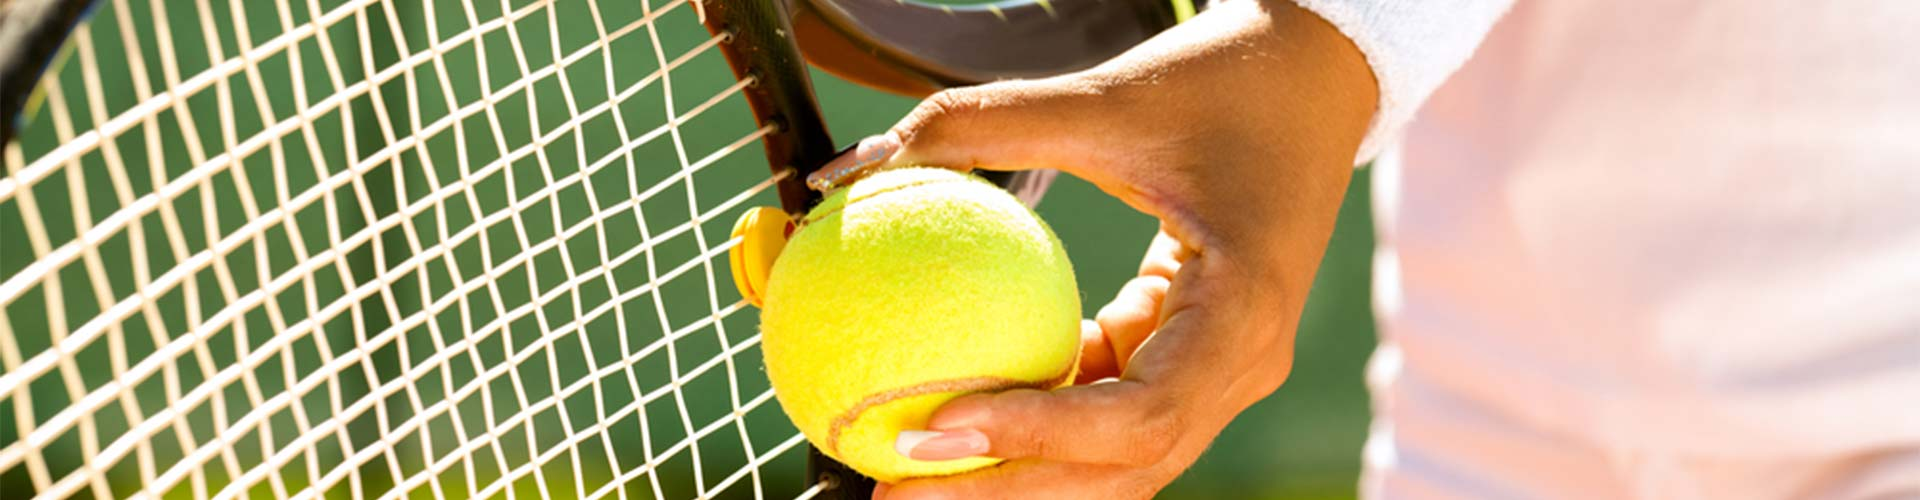 How Tennis Equipment Is Manufactured Banner